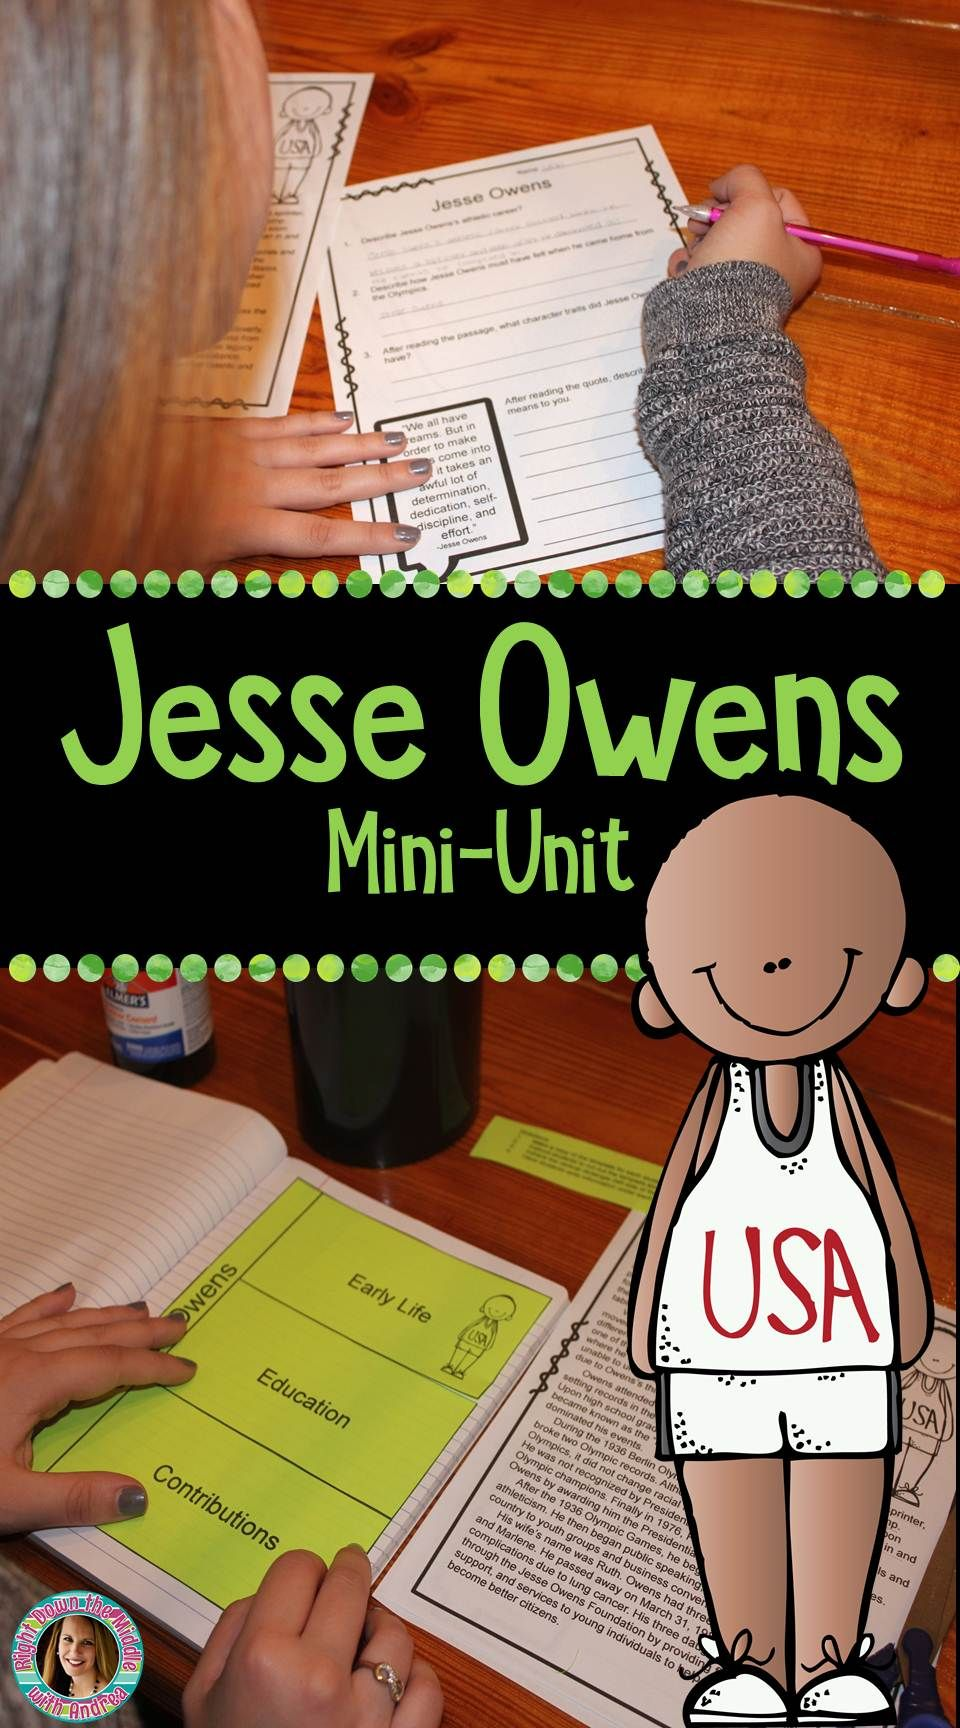 worksheet Jesse Owens Reading Comprehension Worksheets do you want a print and go resource to use teach your students jesse owens mini lesson